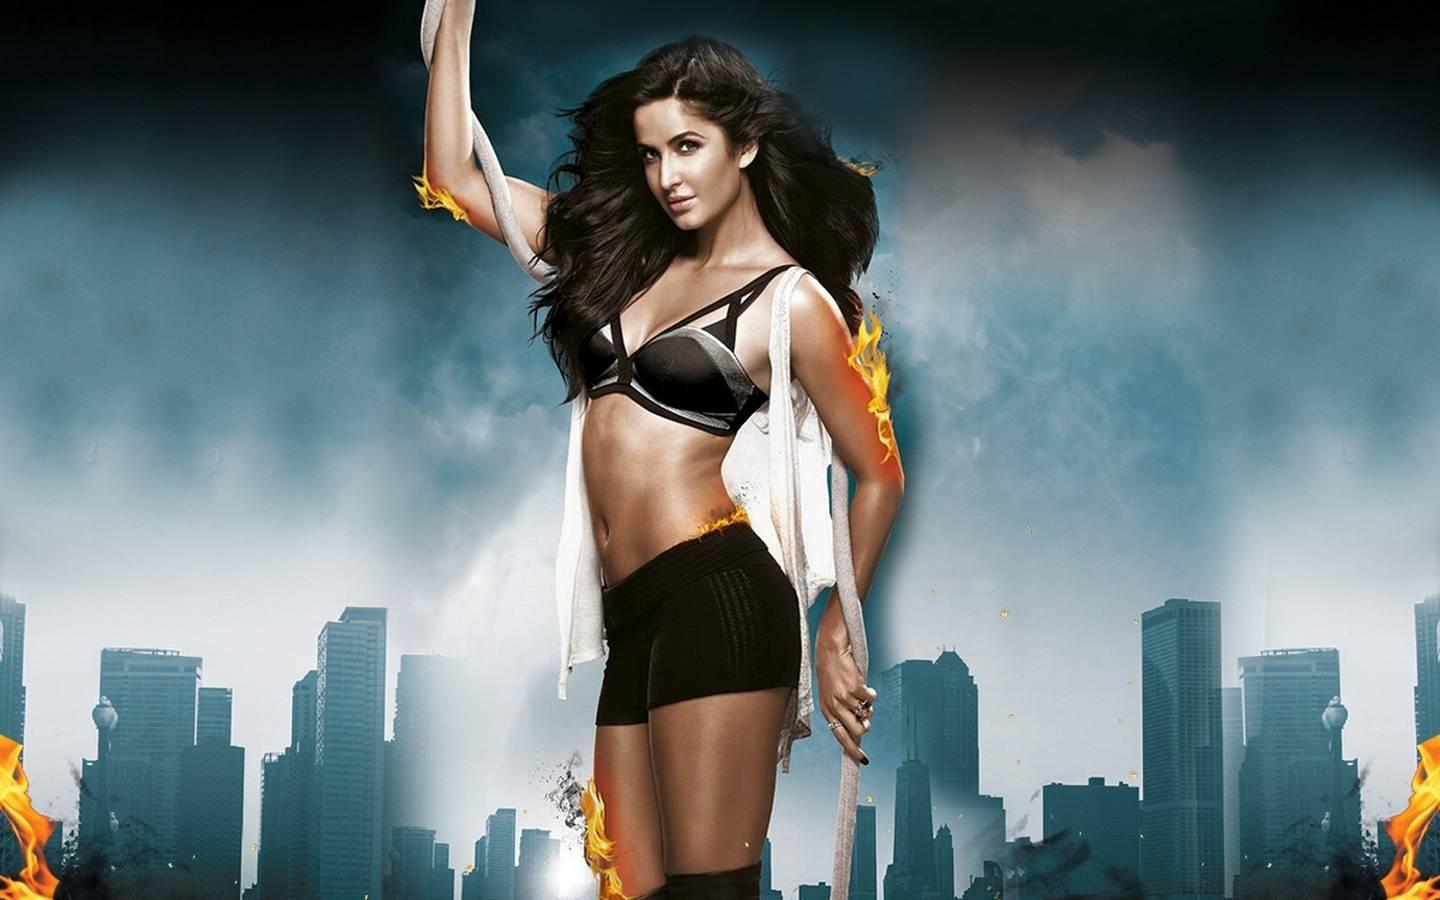 dhoom-3-katrina-kaif-hd-wallpapers-cool-desktop-background-images